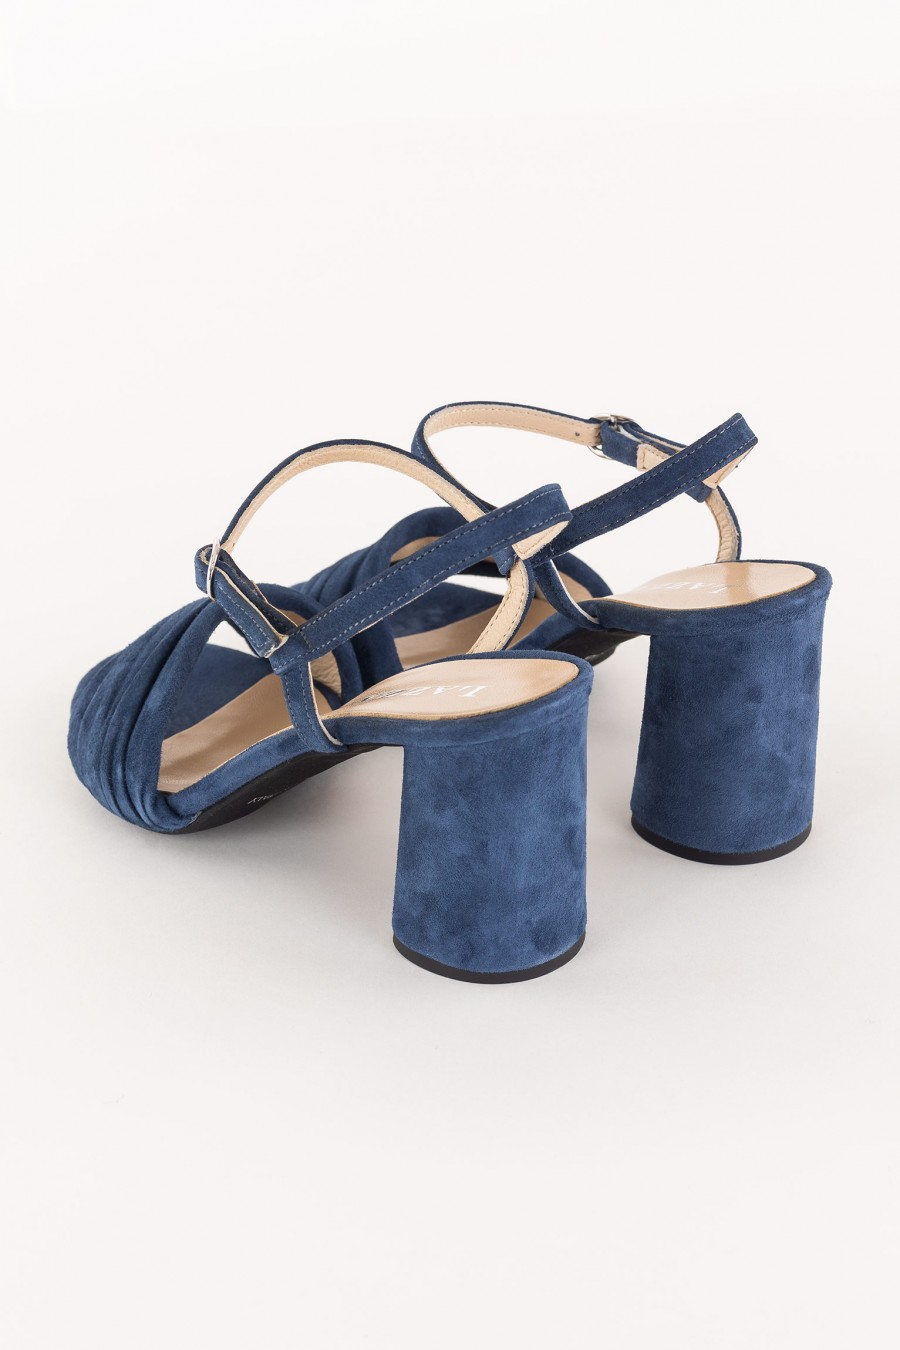 blue sandal with draped strap